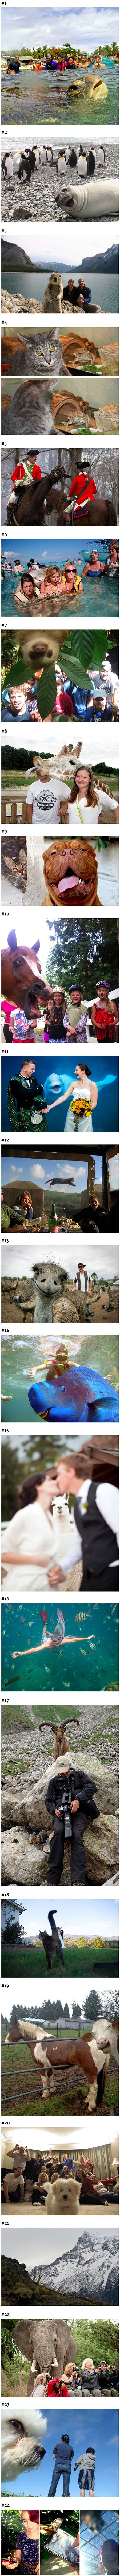 These strange animals are experts at photobombing.